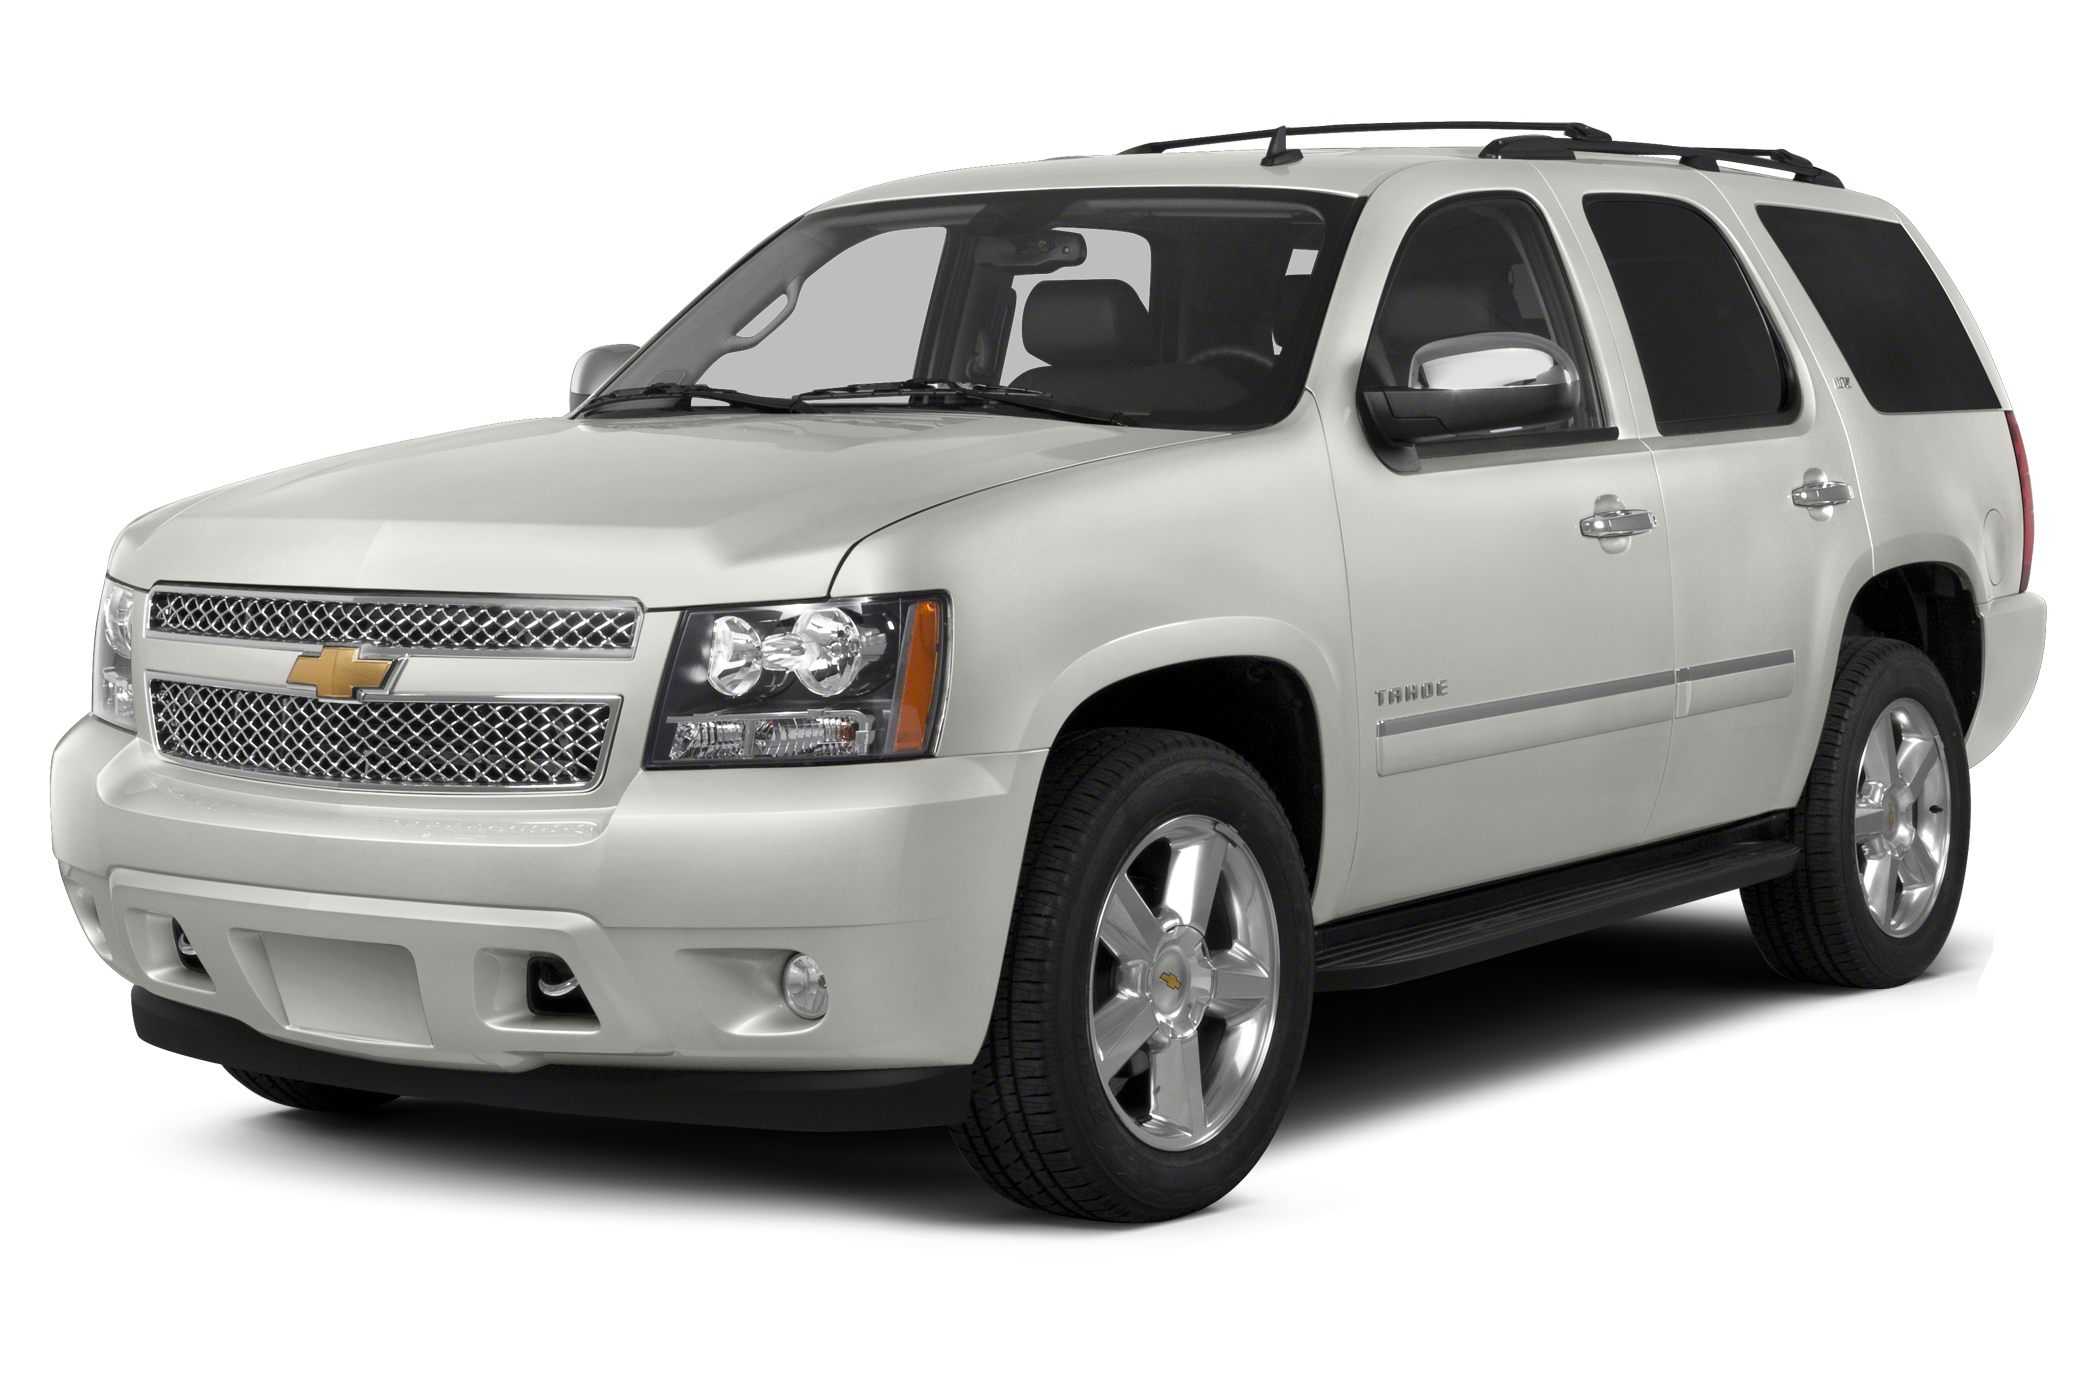 2013 Chevrolet Tahoe LT SUV for sale in Los Angeles for $38,995 with 31,005 miles